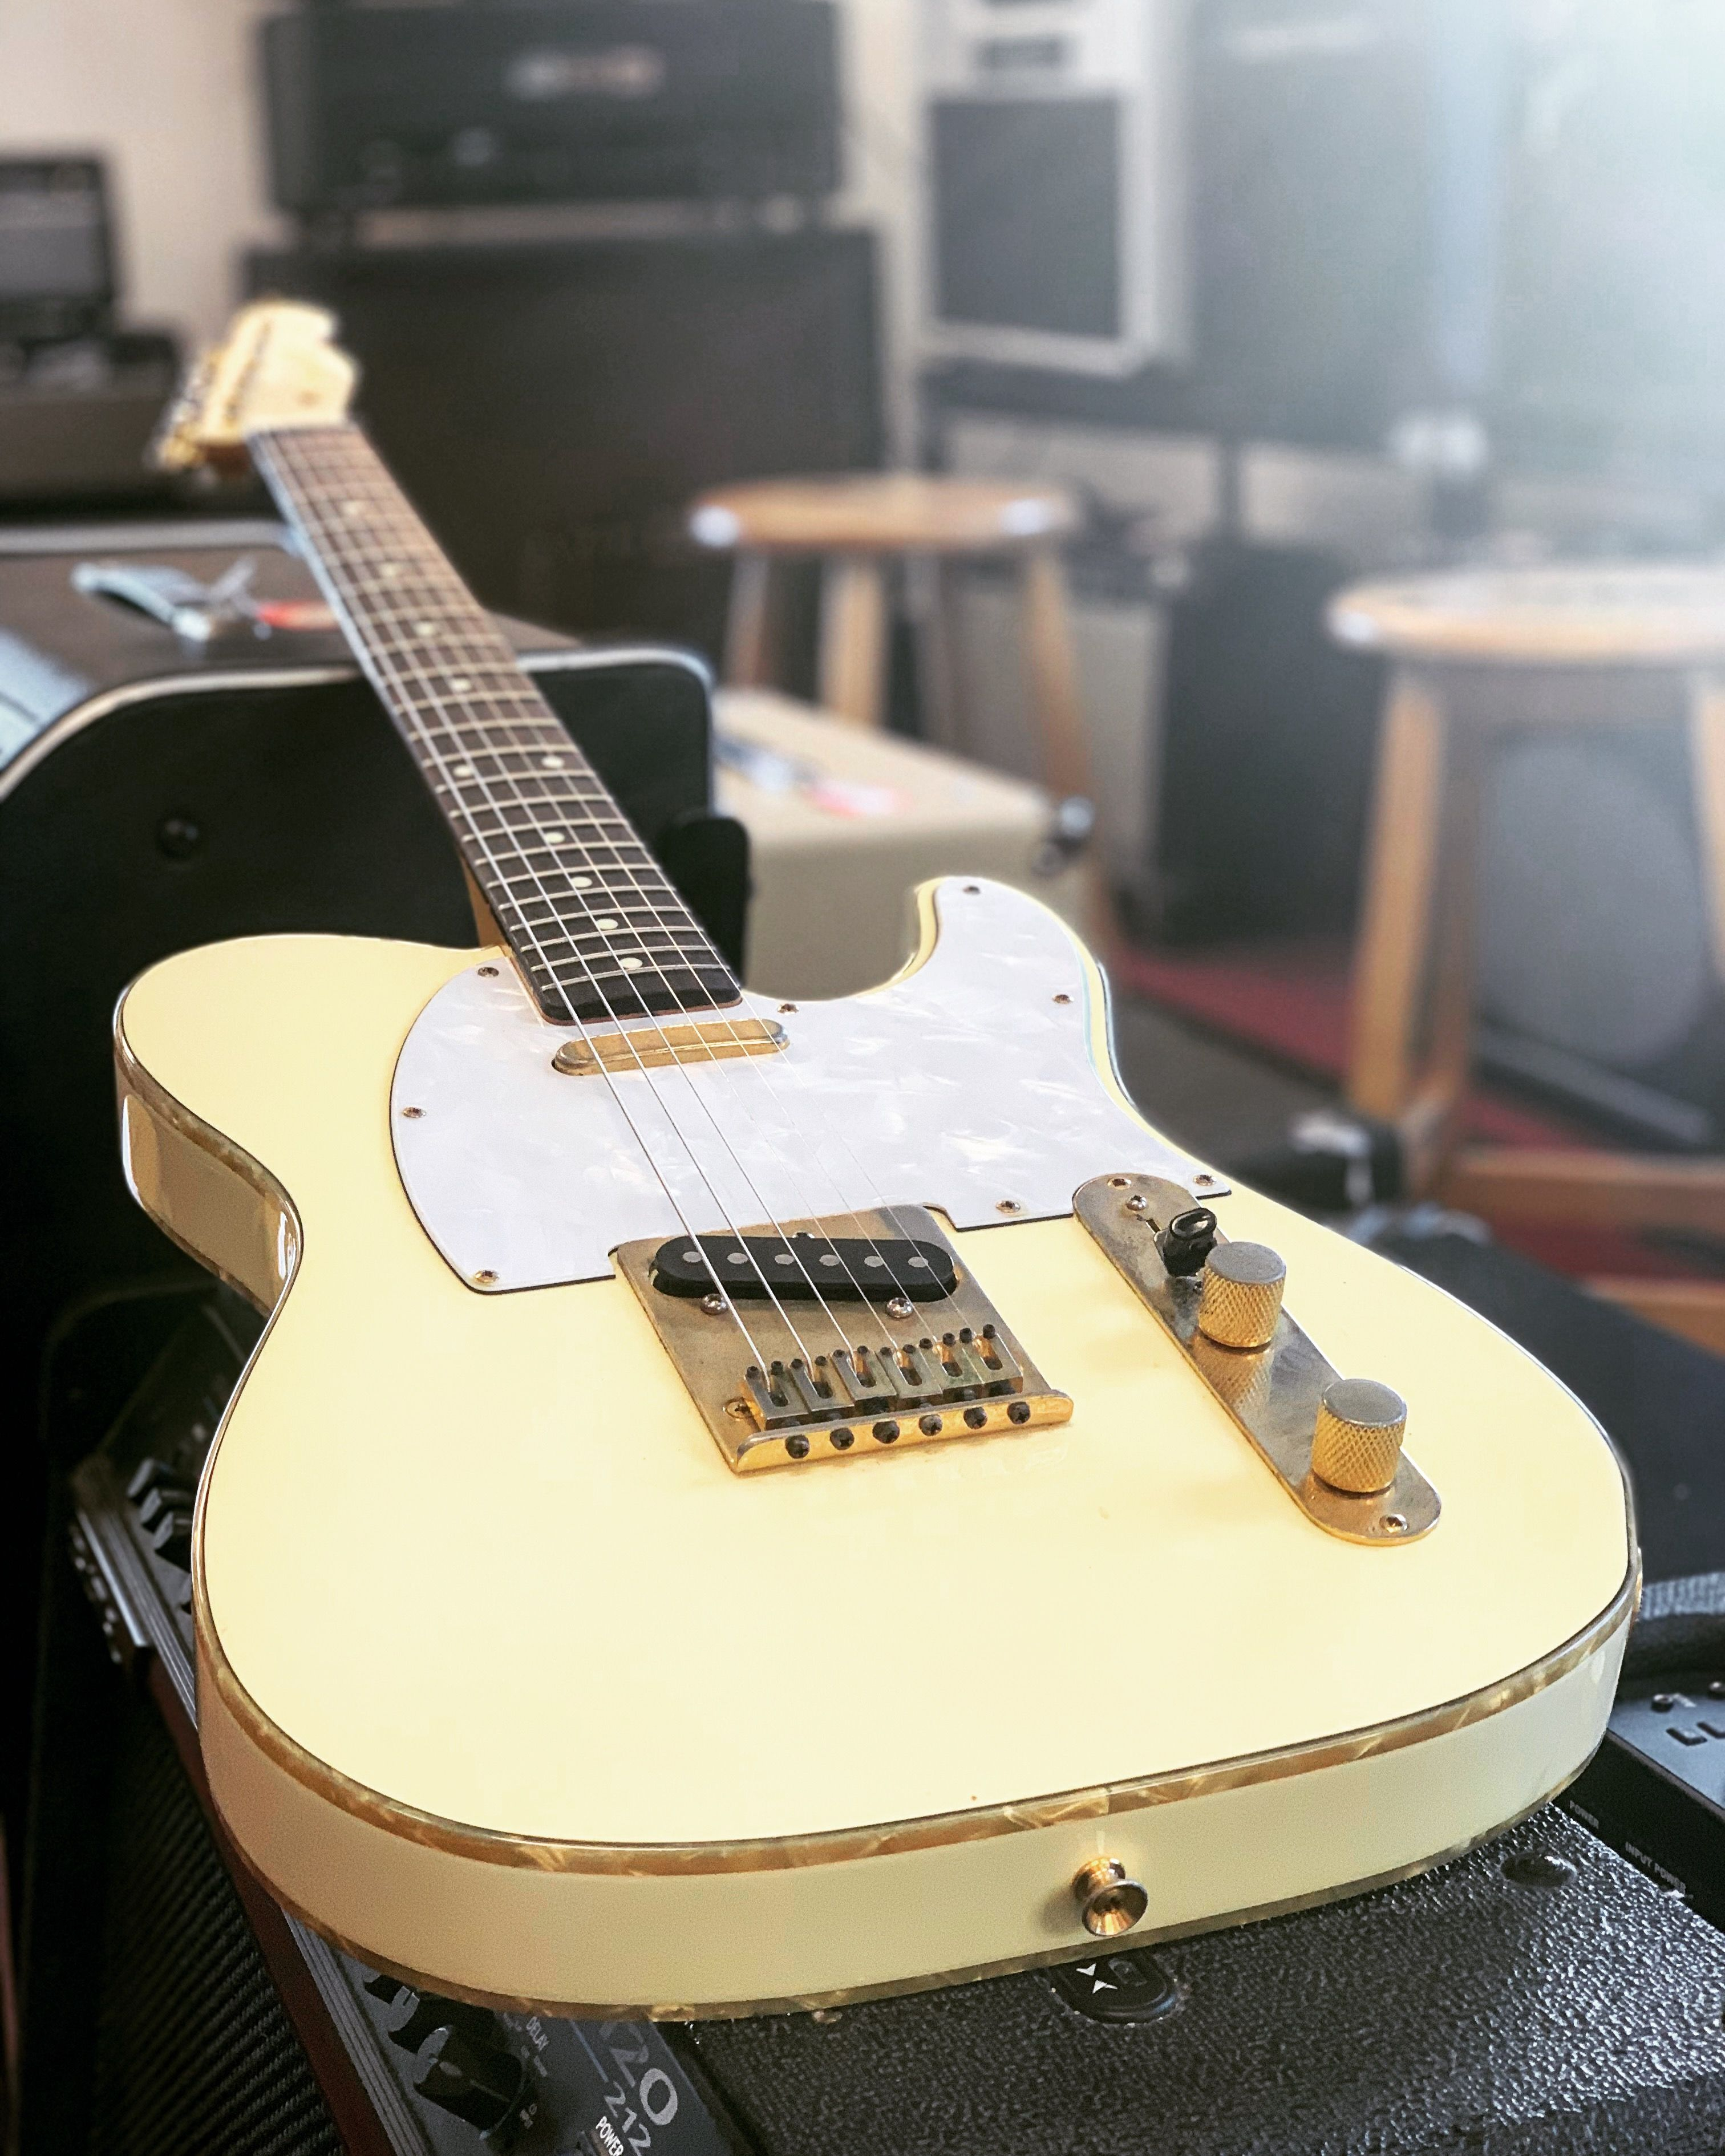 Built In Japan, This Fender Telecaster Custom (1997